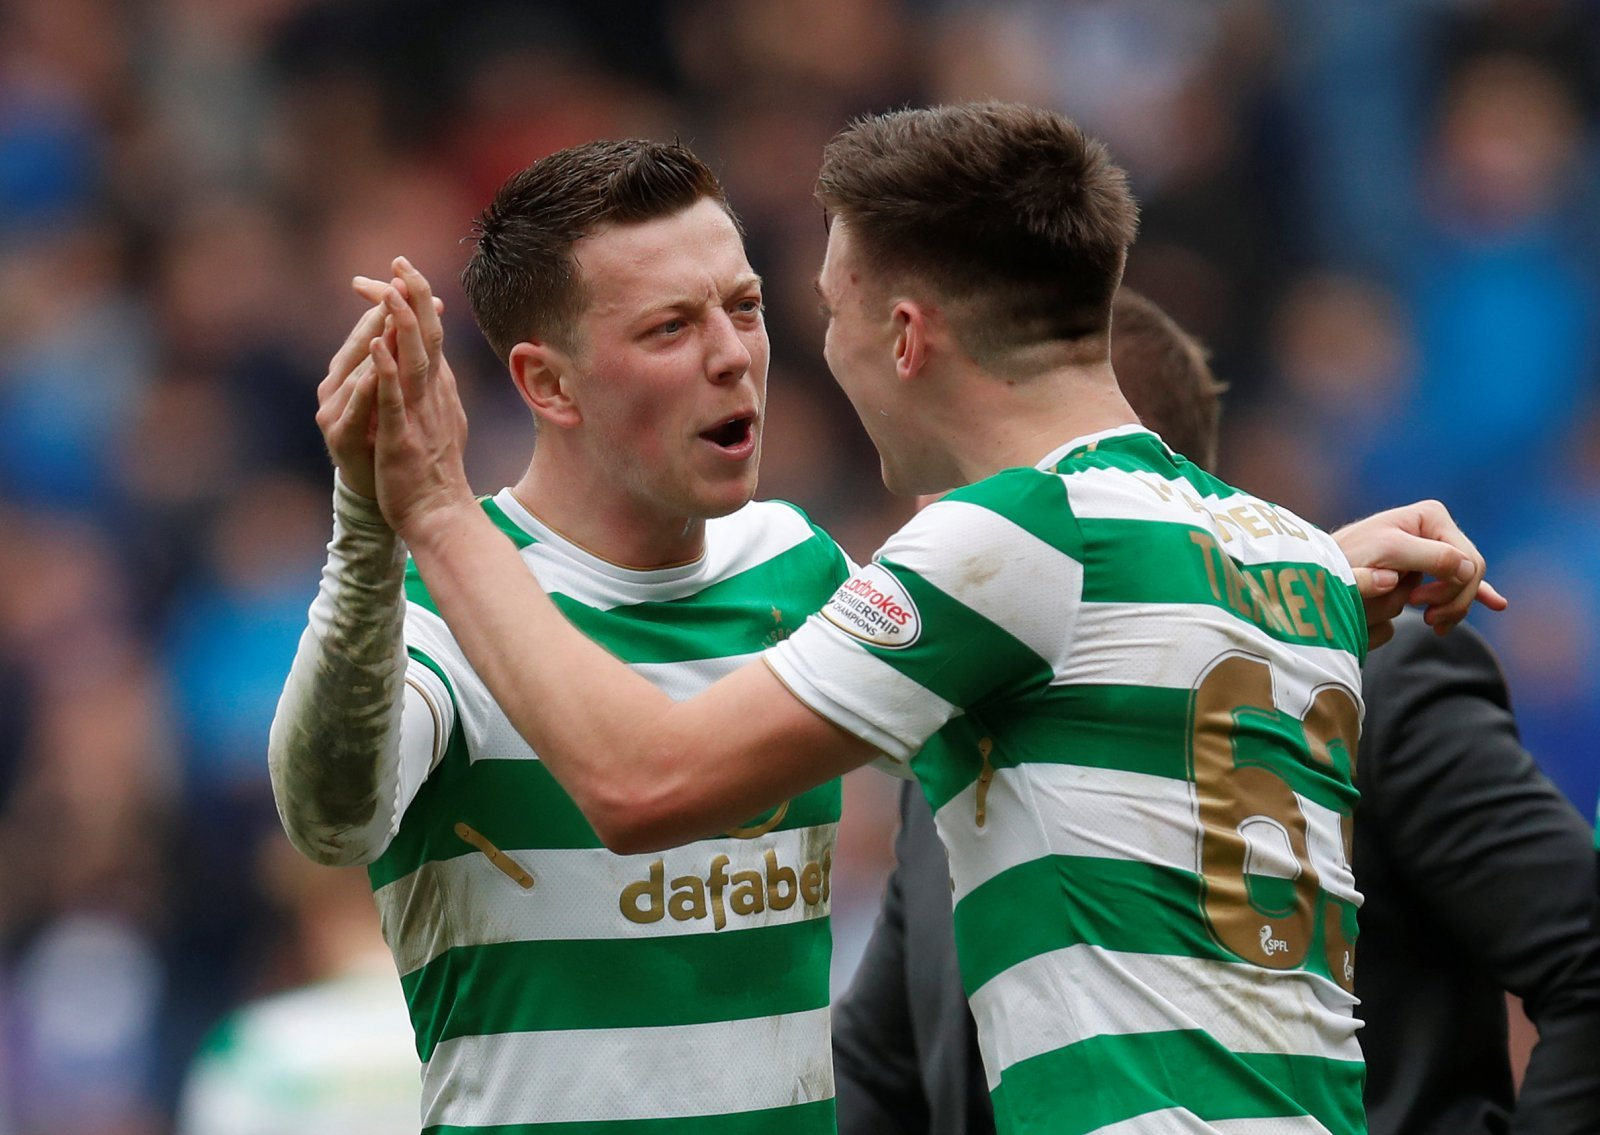 Celtic: Brendan Rodgers might be barking up the wrong tree